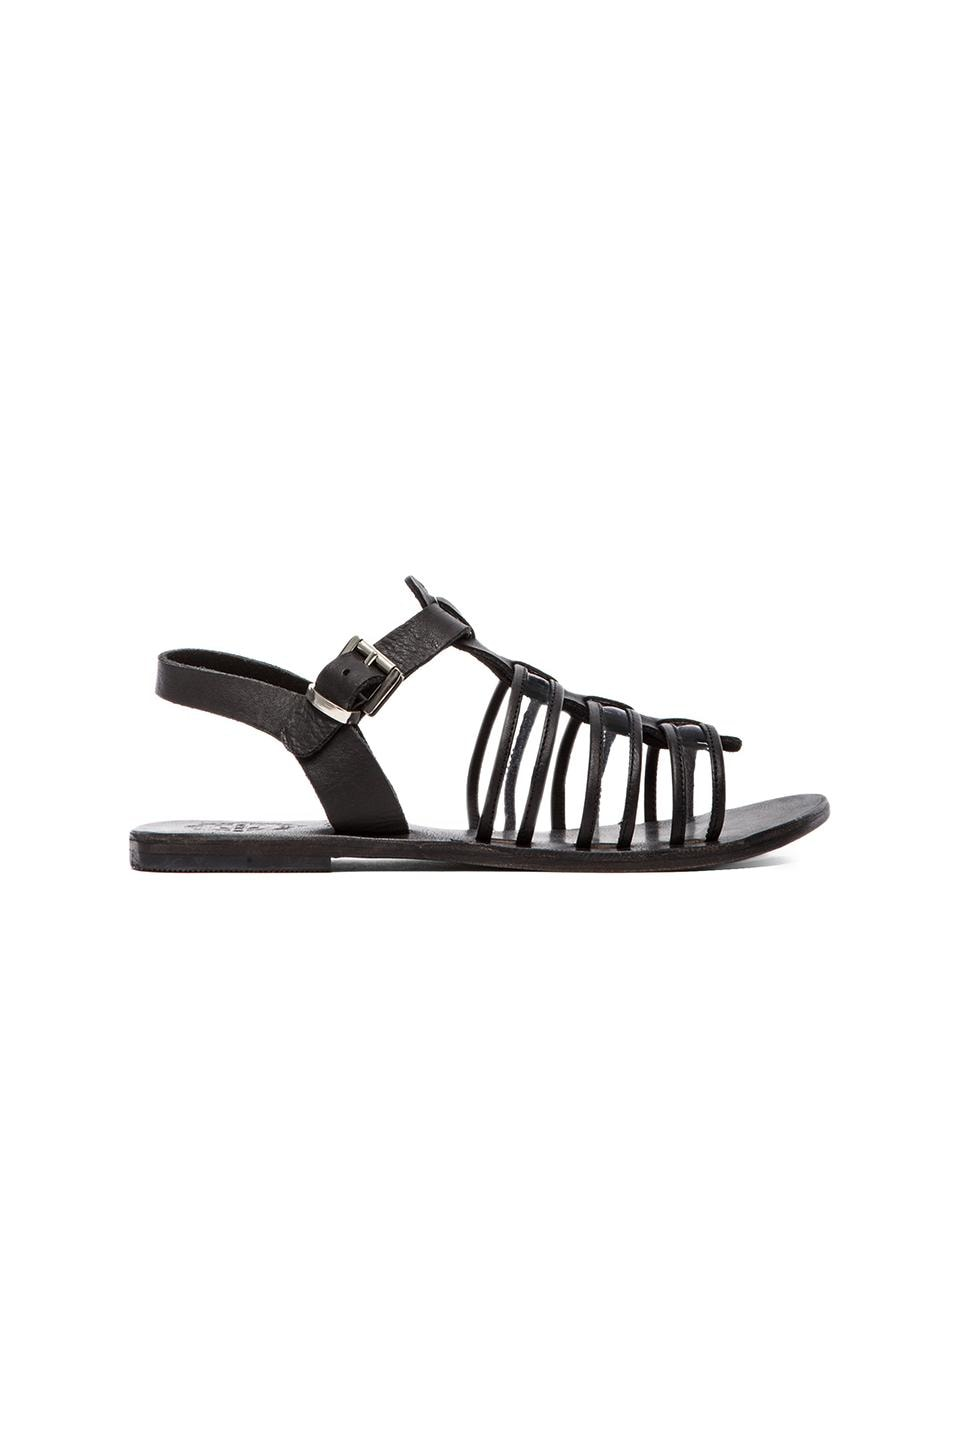 Sol Sana Dolly Sandal in Black